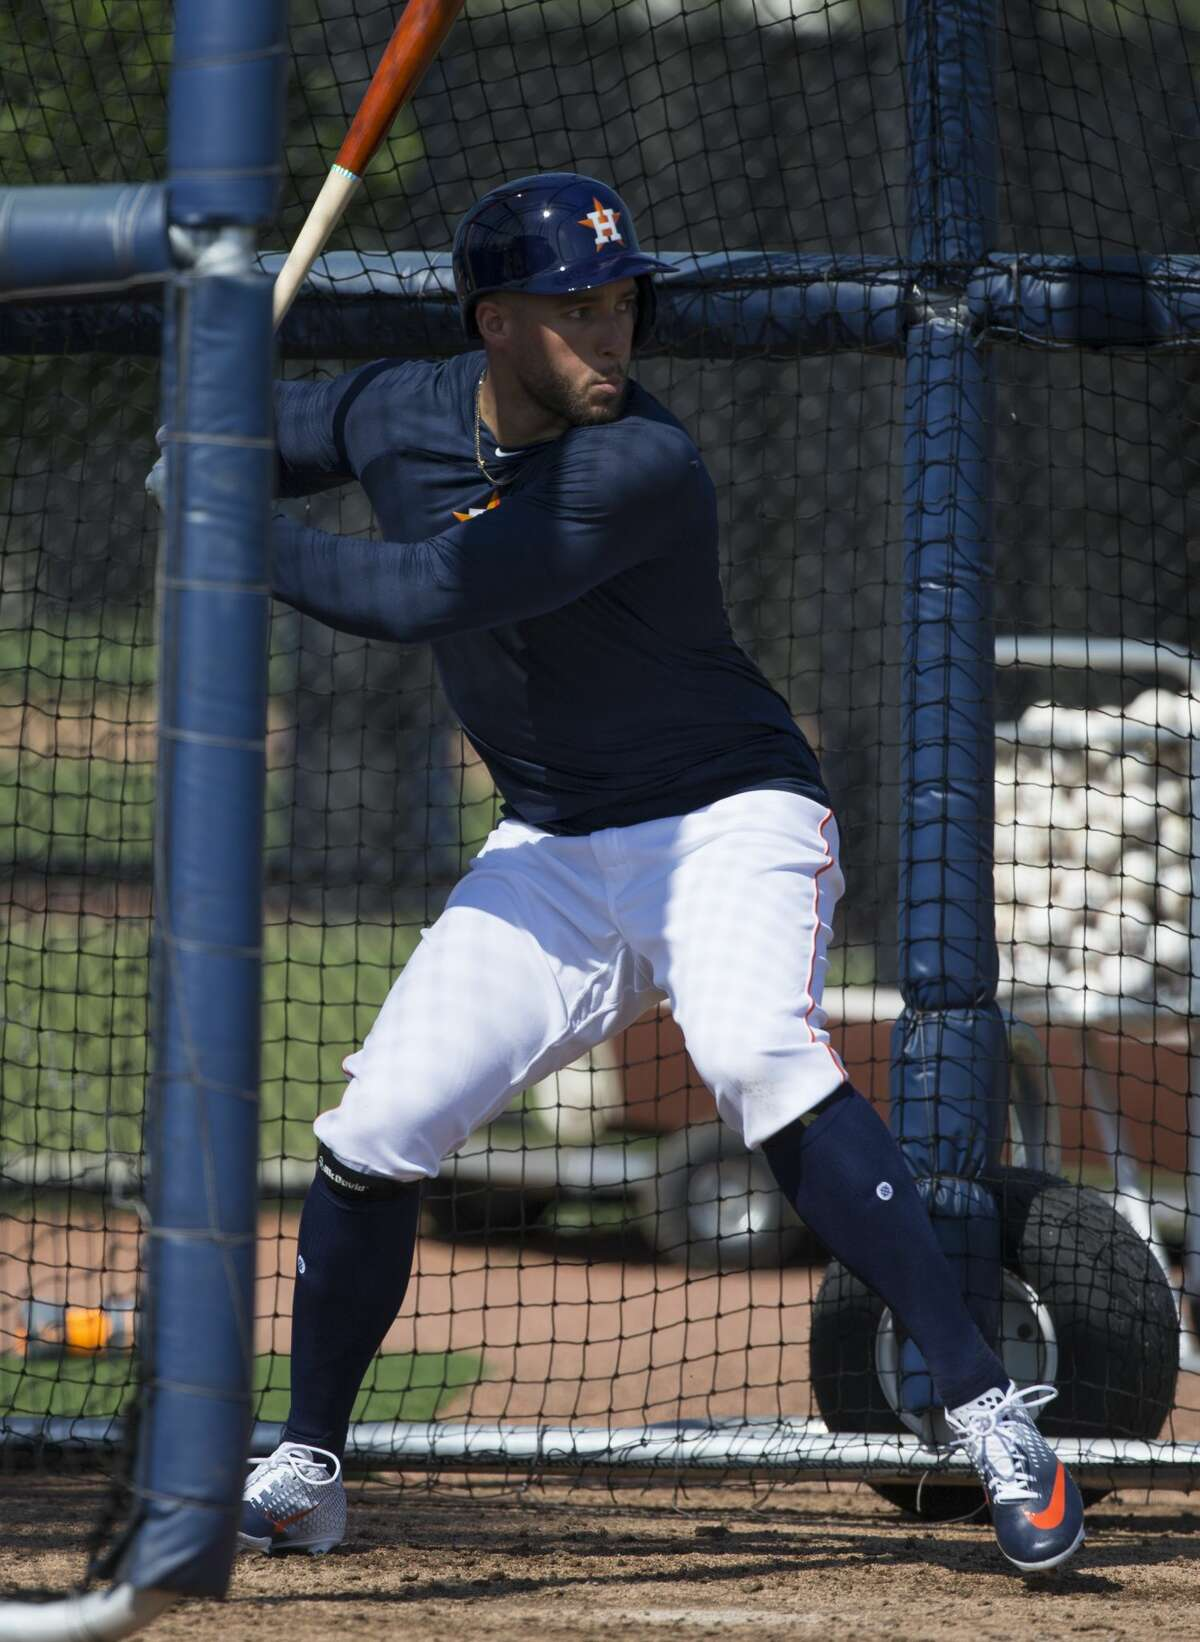 Houston Astros outfielder George Springer (4) is ready to swing during live batting practice at Fitteam Ballpark of The Palm Beaches on Day 6 of spring training on Tuesday, Feb. 19, 2019, in West Palm Beach.